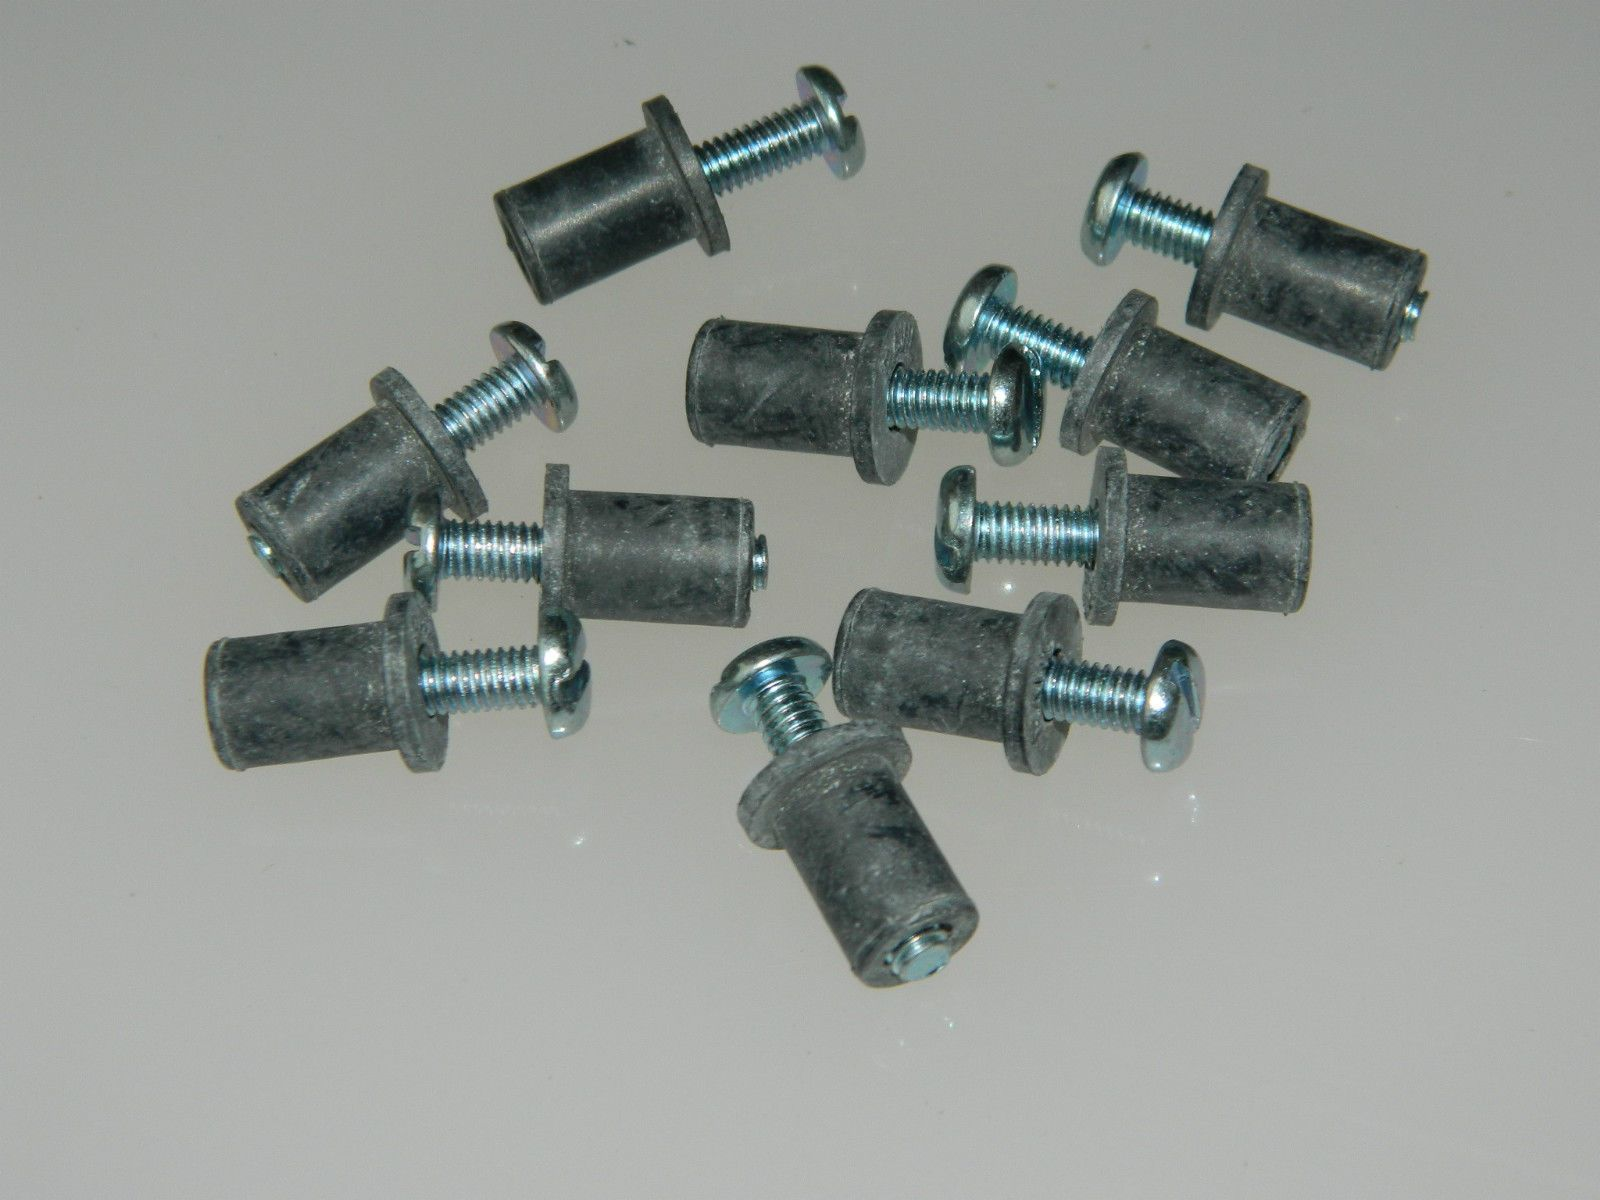 10 x M4 Steel Pan Head Slotted Screws With Rubber Expandable